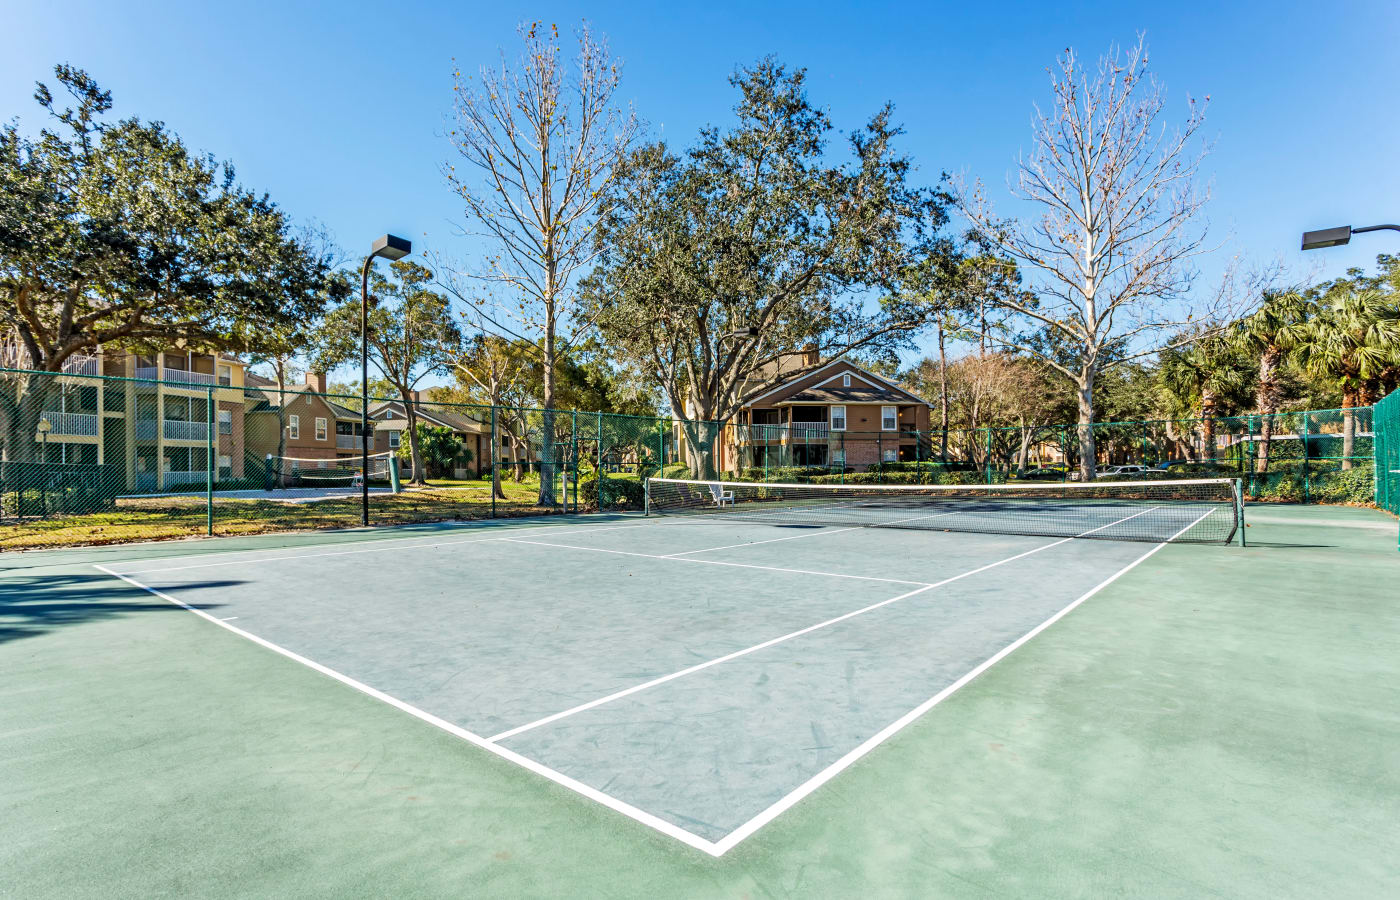 Tennis courts at IMT Newport Colony in Casselberry, FL